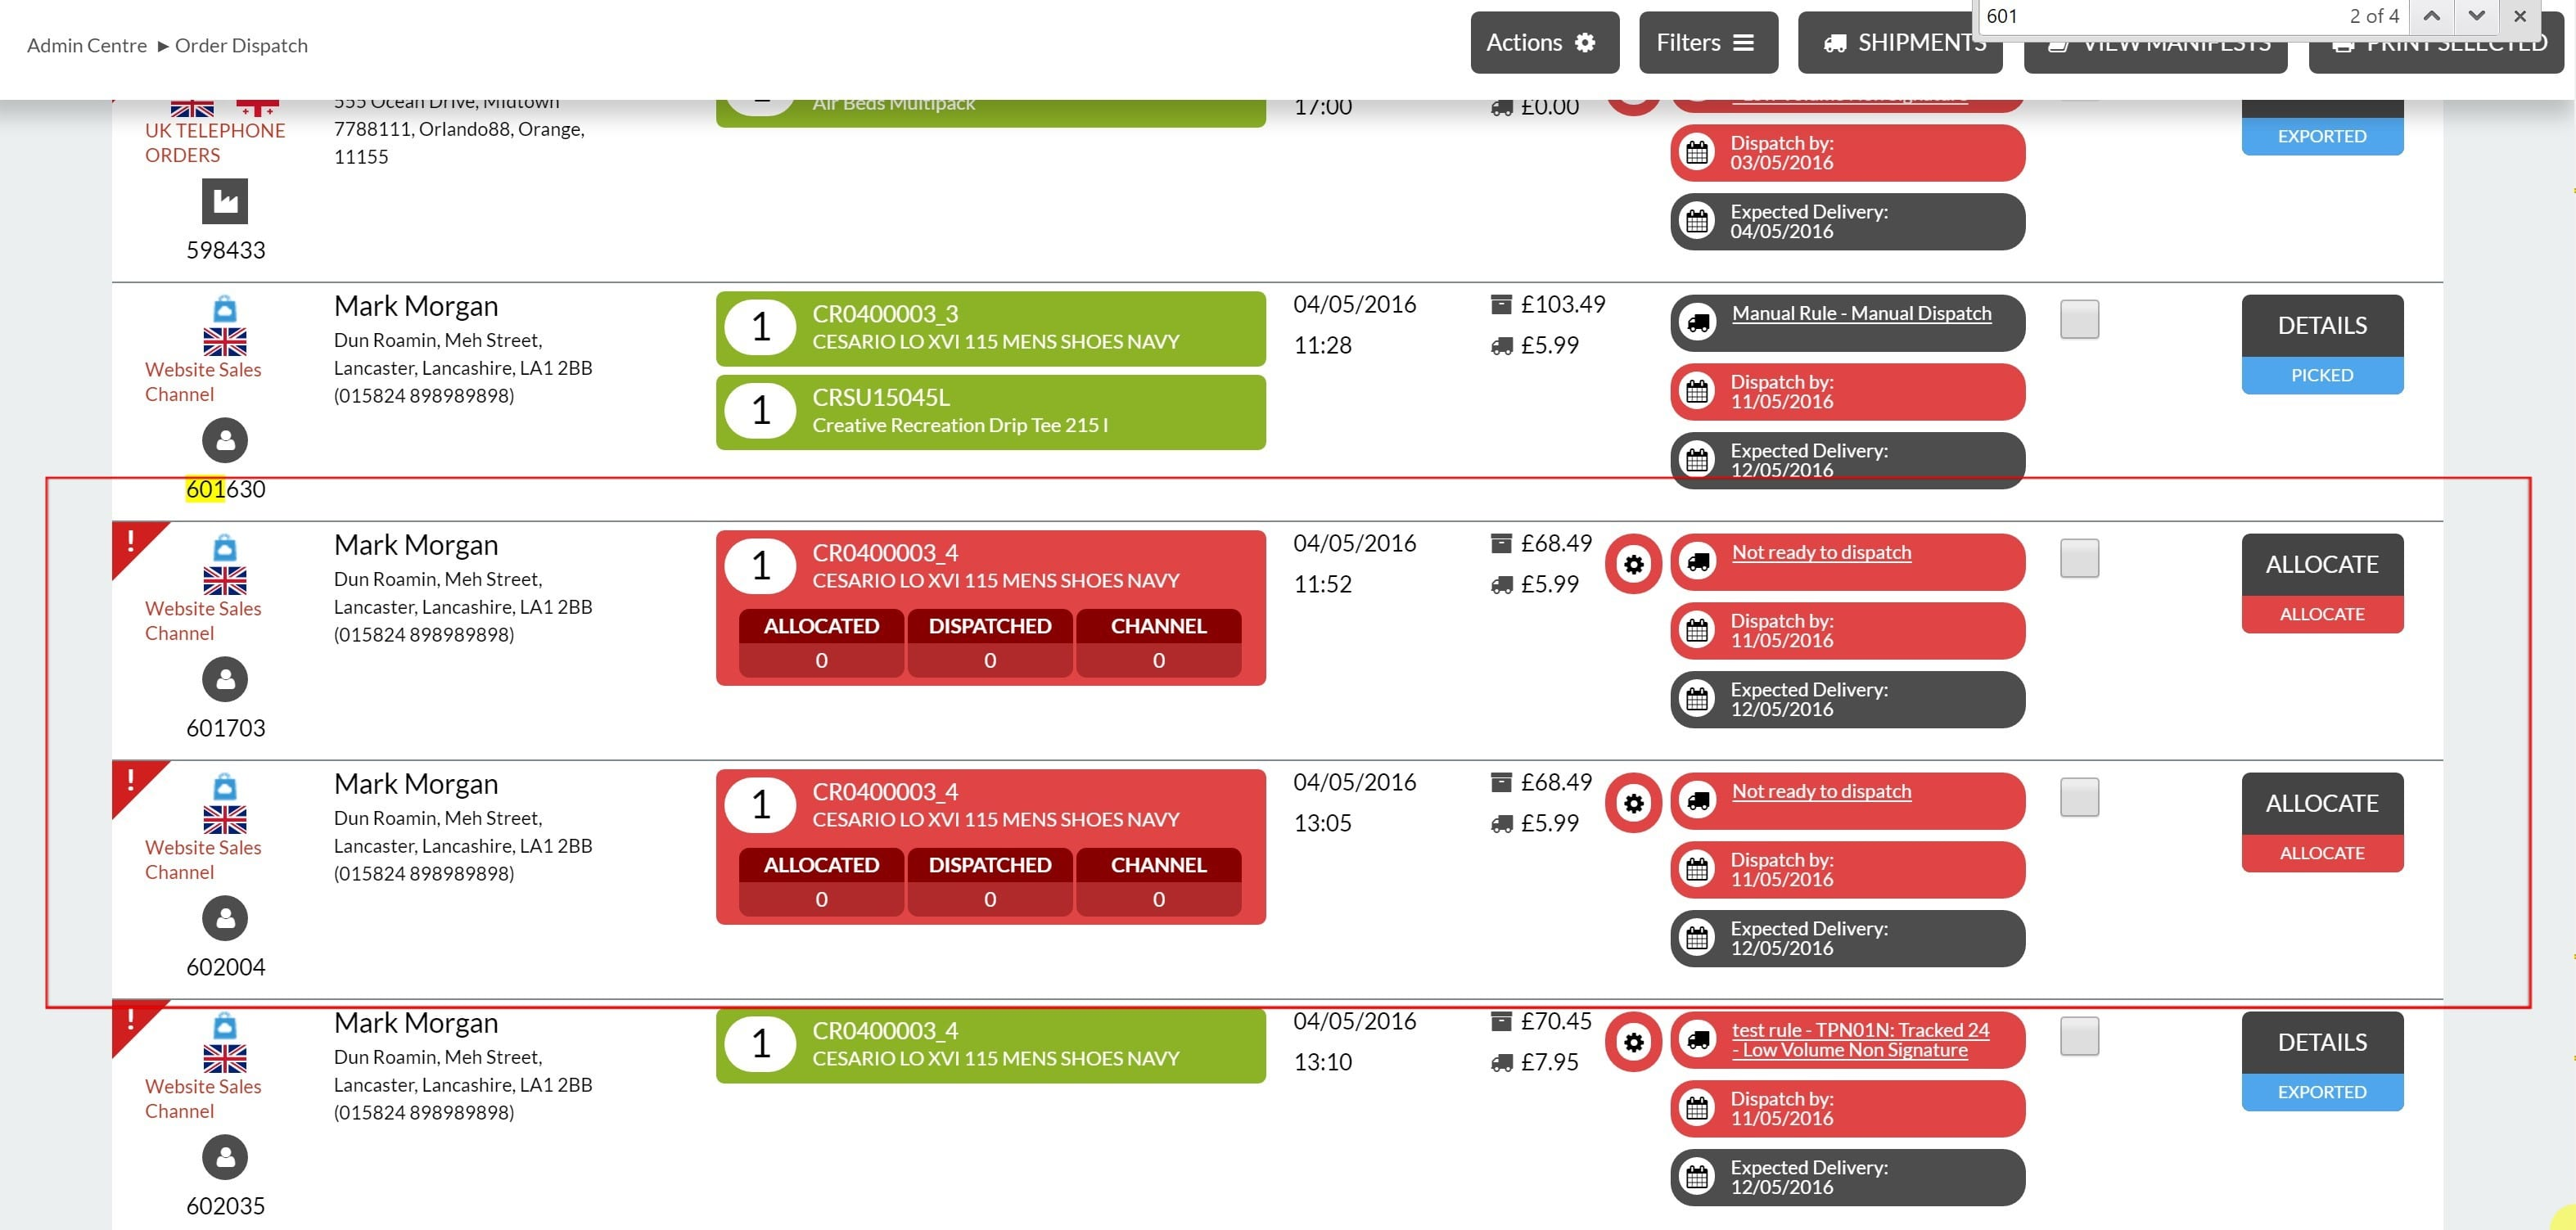 1. Order shown in red have no stock allocated against them